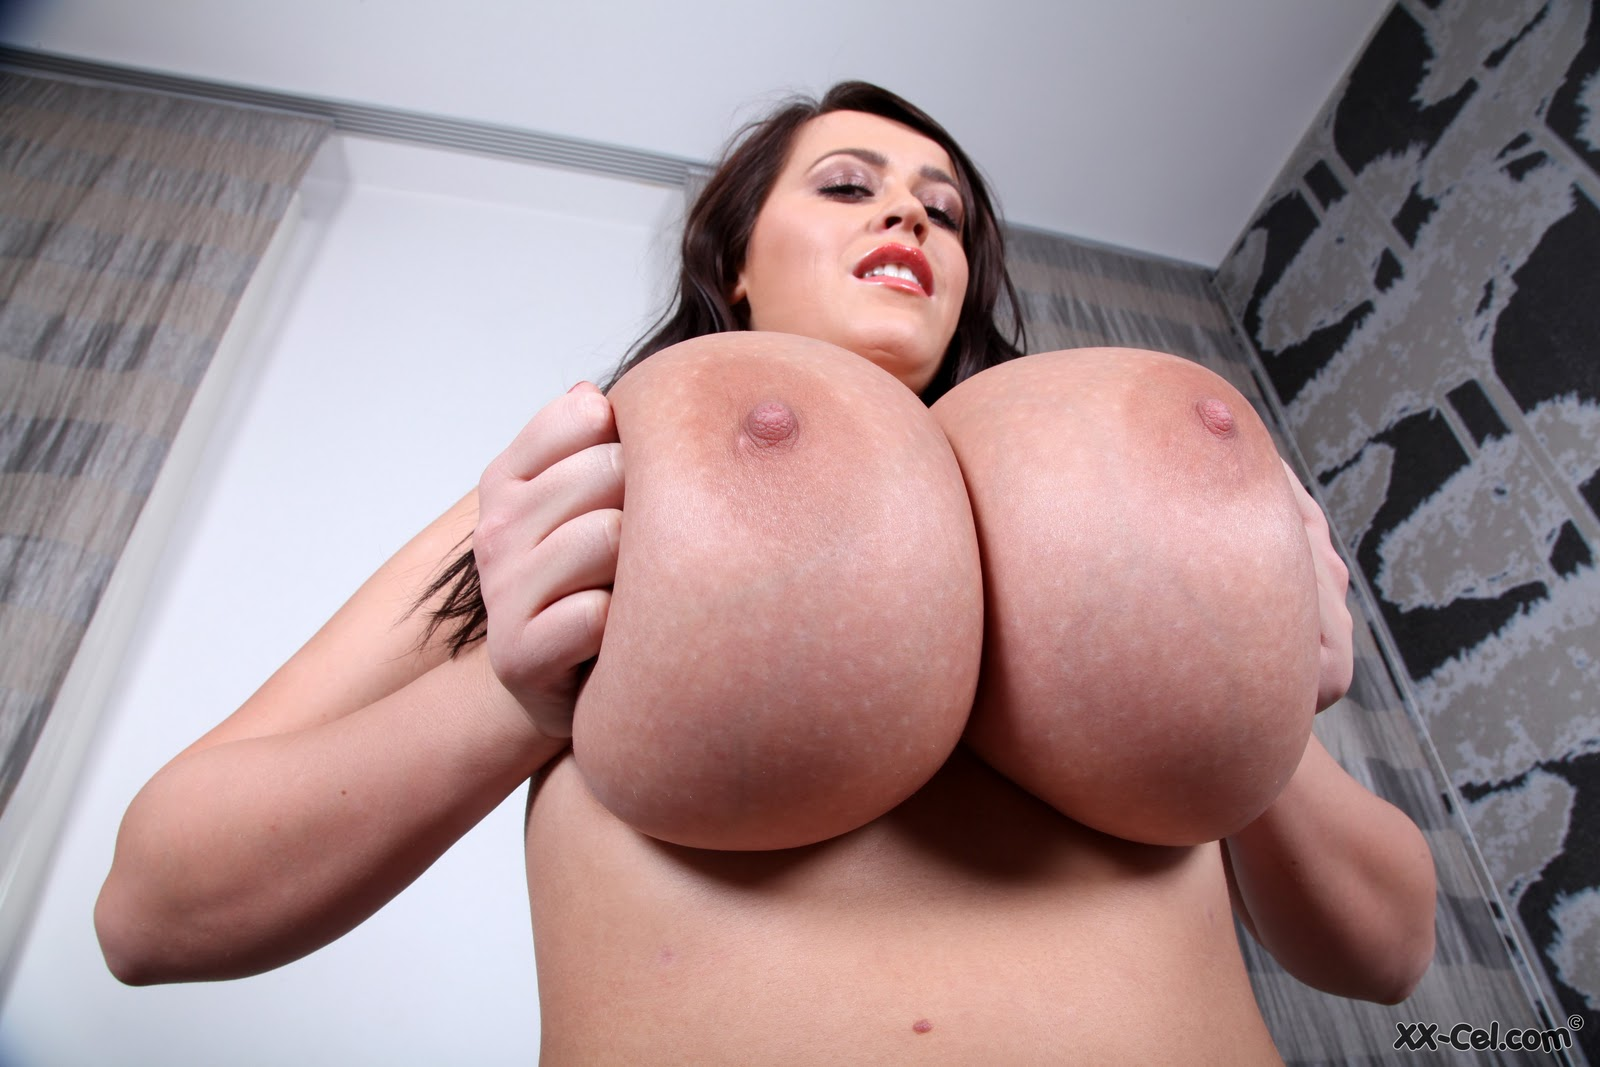 Loved that Fucking giant boobs